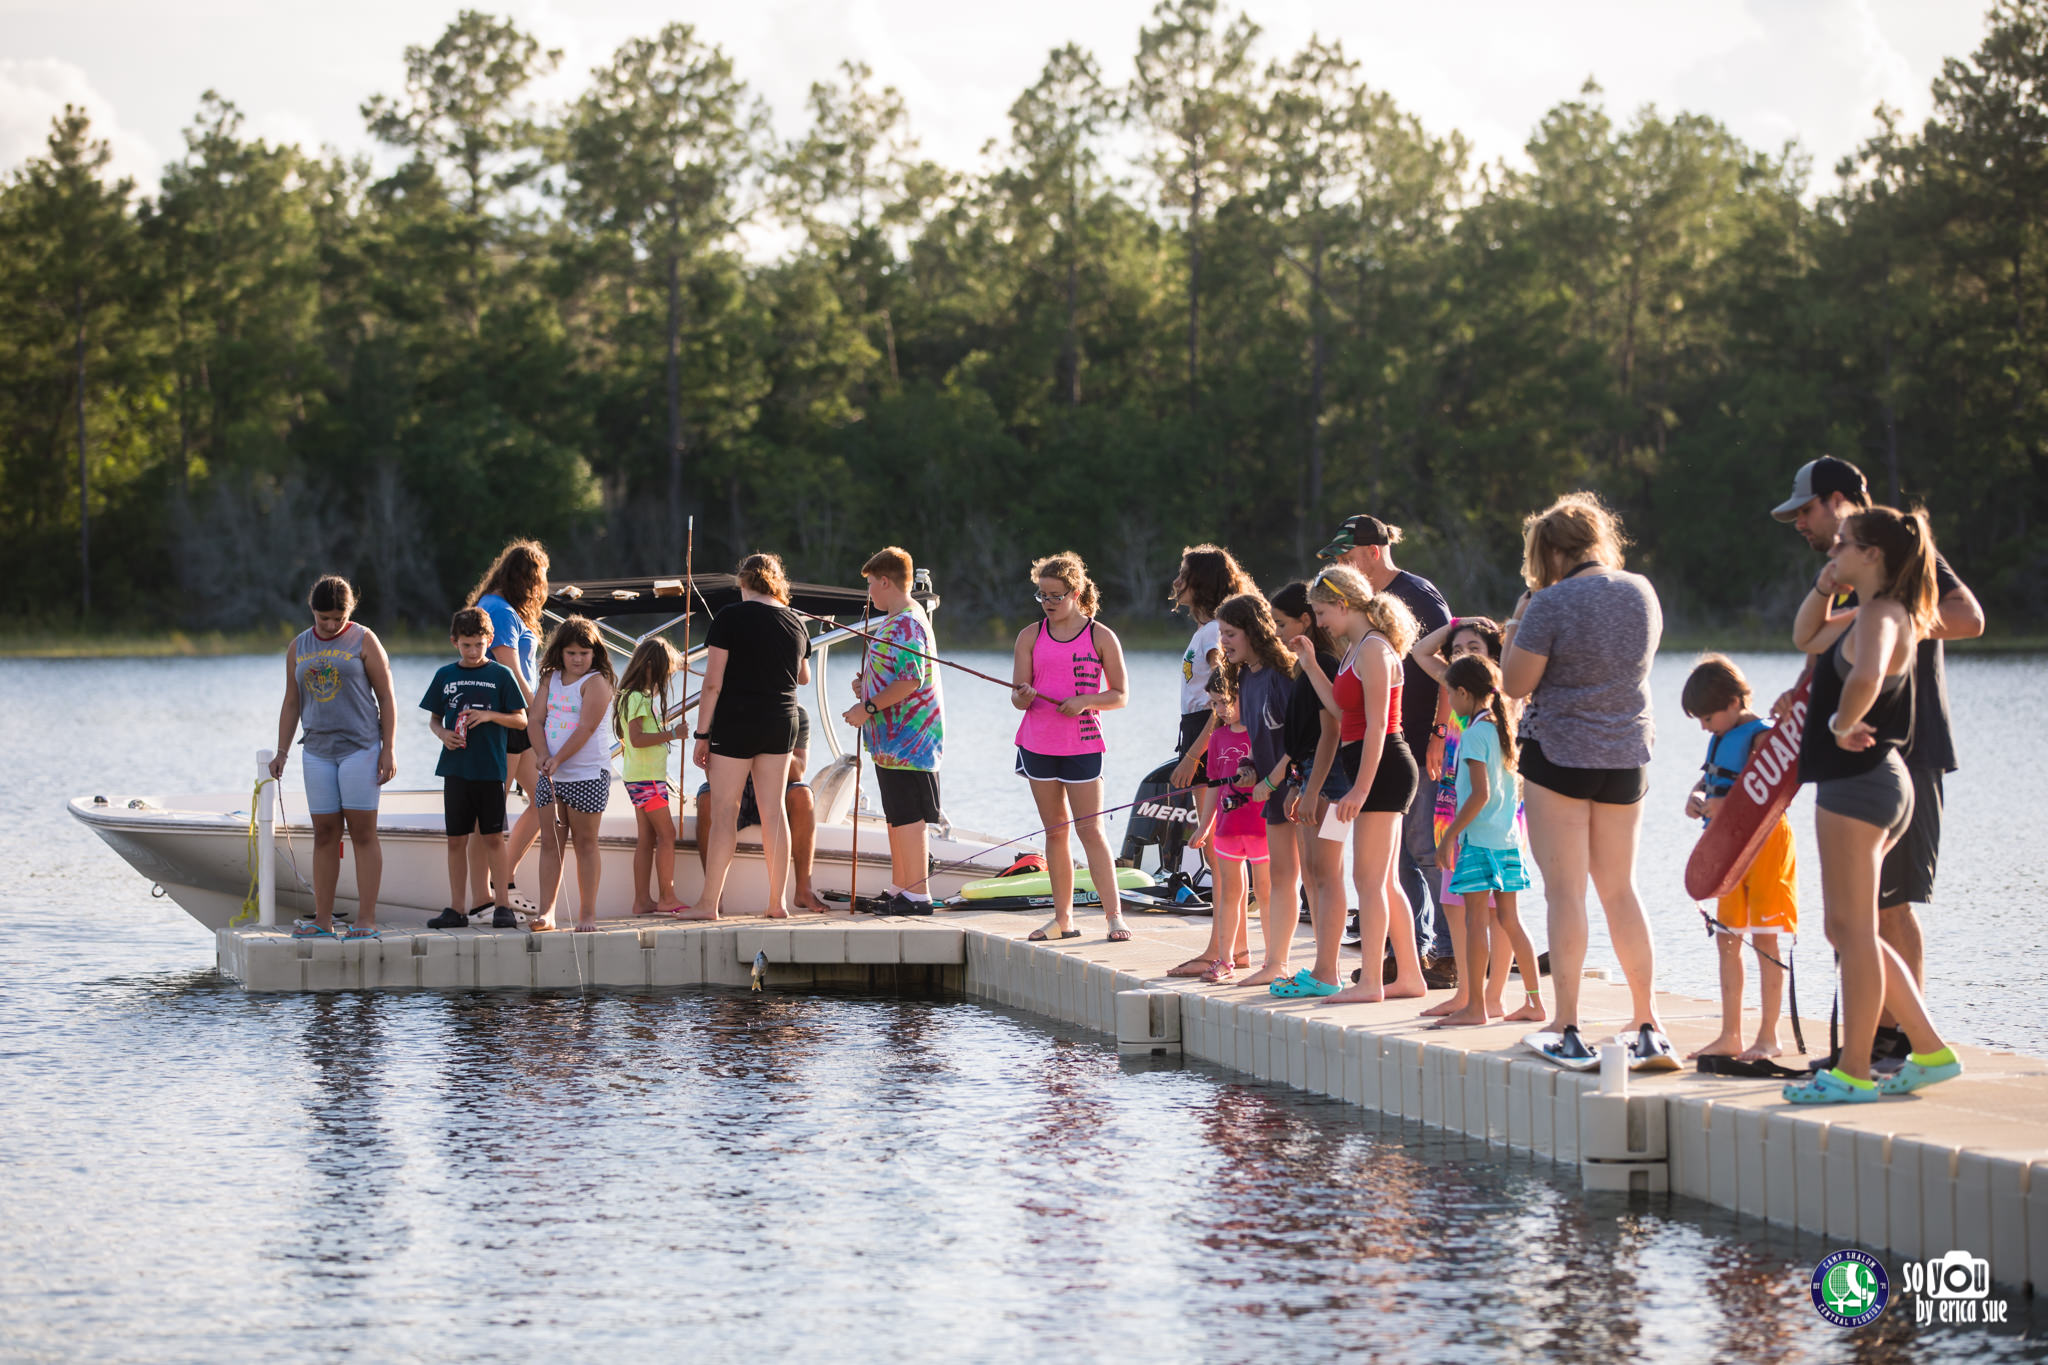 so-you-by-erica-sue-camp-shalom-central-florida-sleepaway-camp-4401.jpg